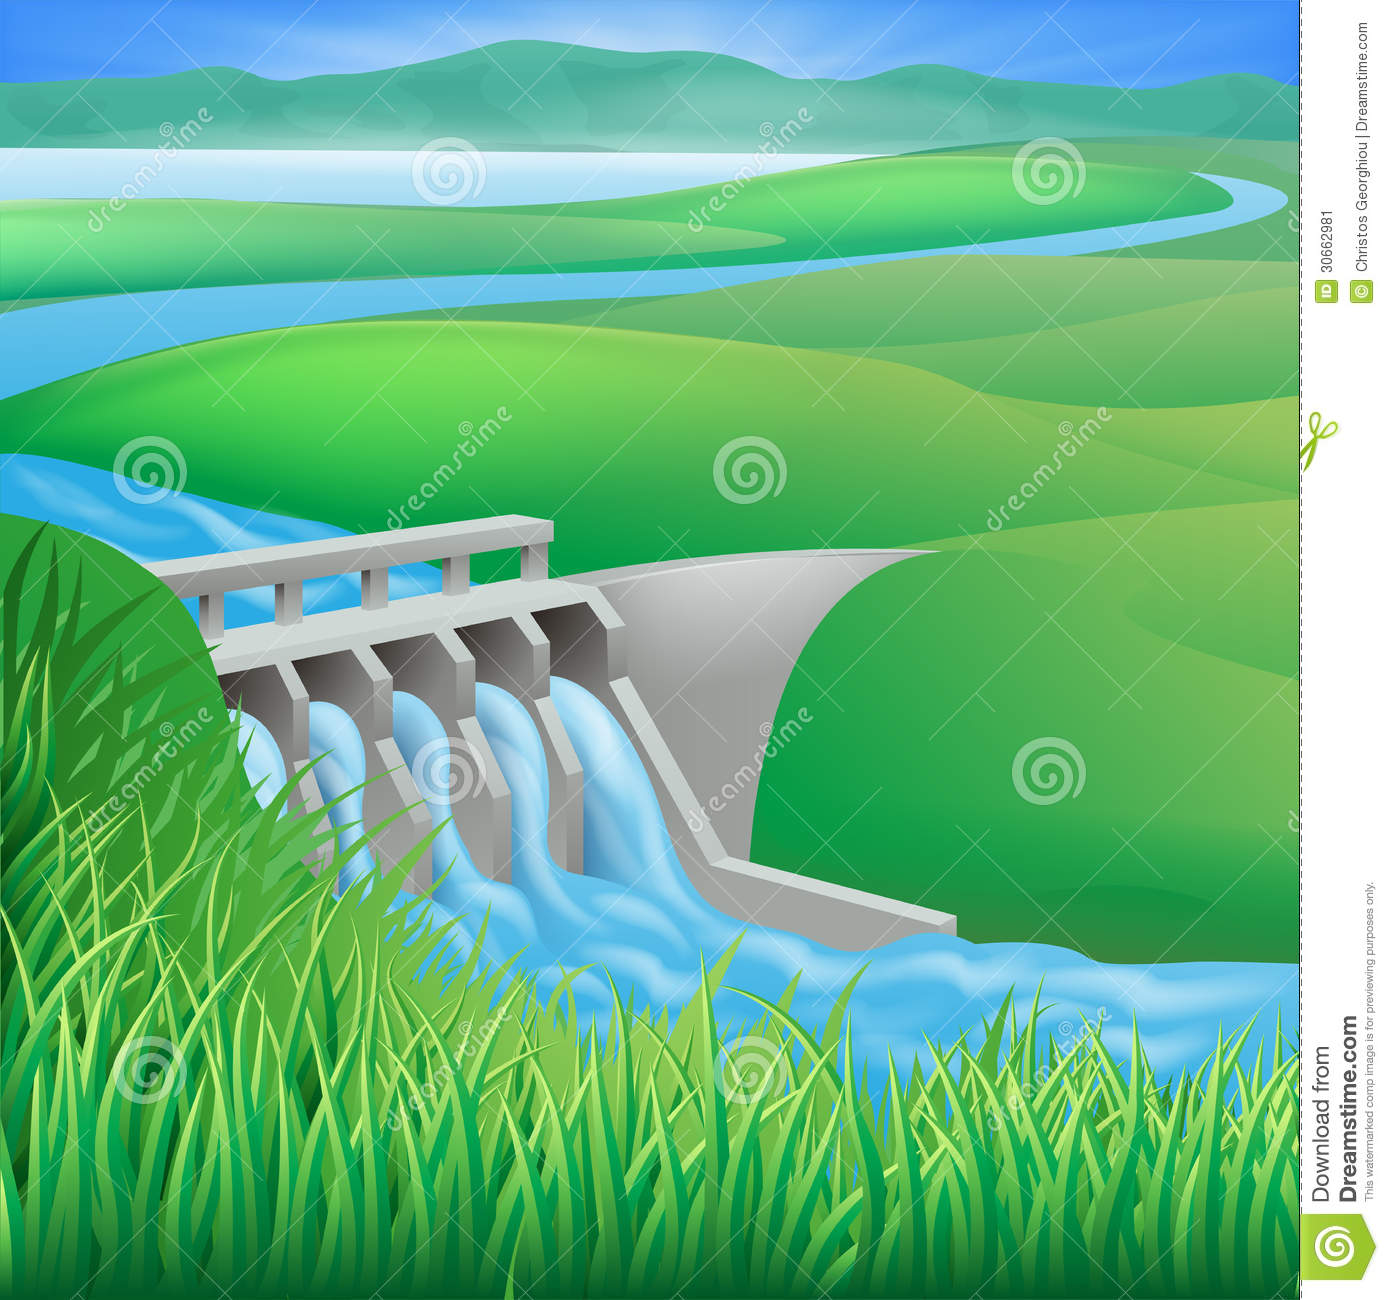 Water energy clipart.